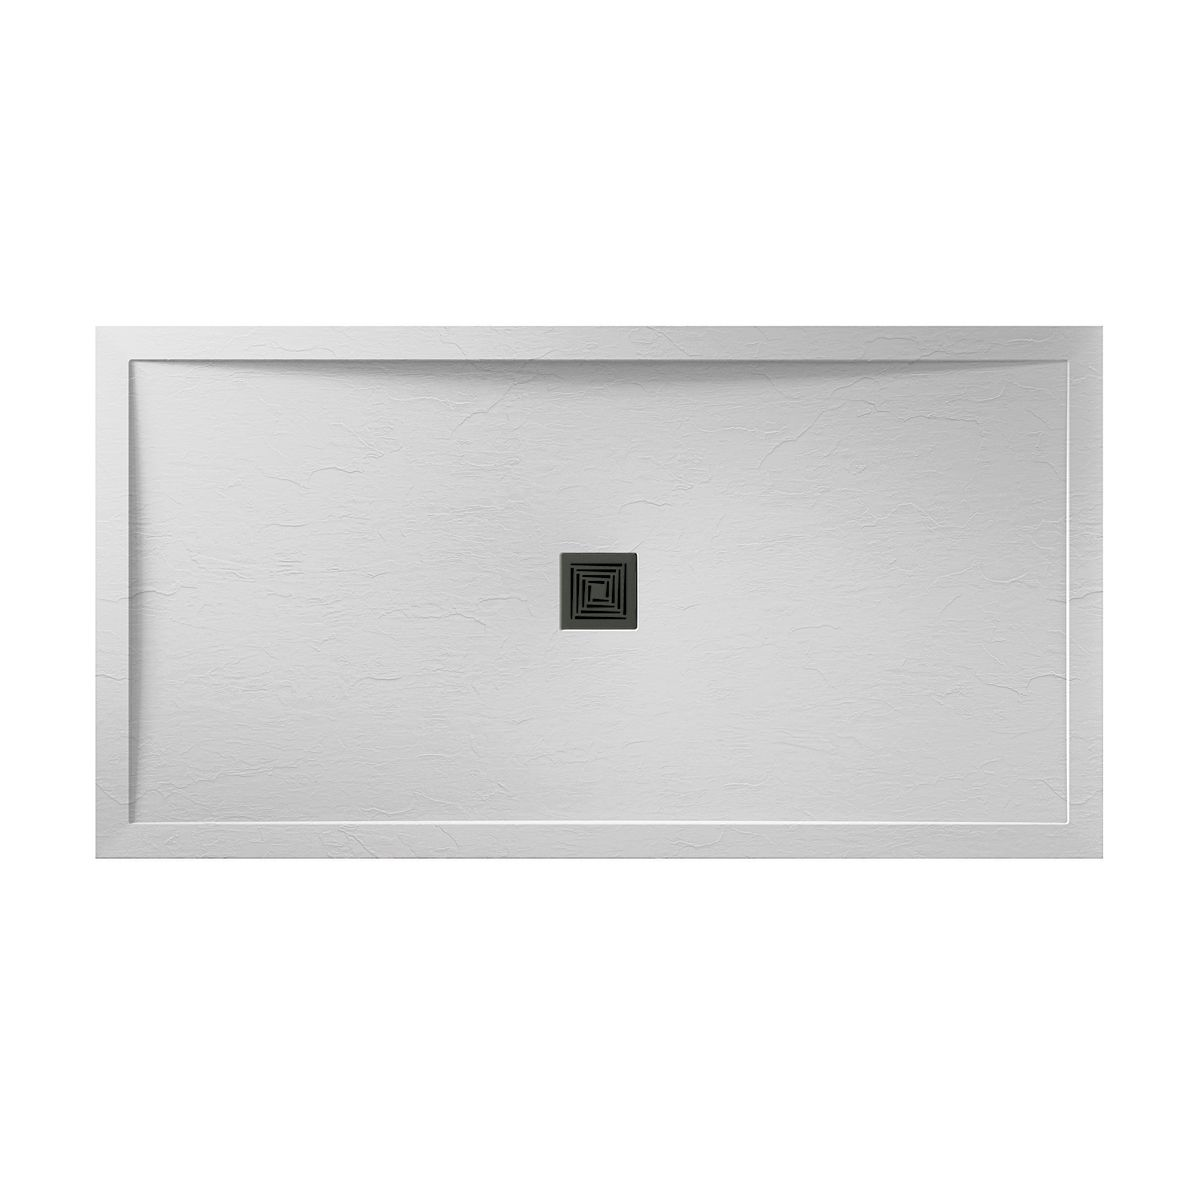 Aquadart White Slate Shower Tray 1400 x 760